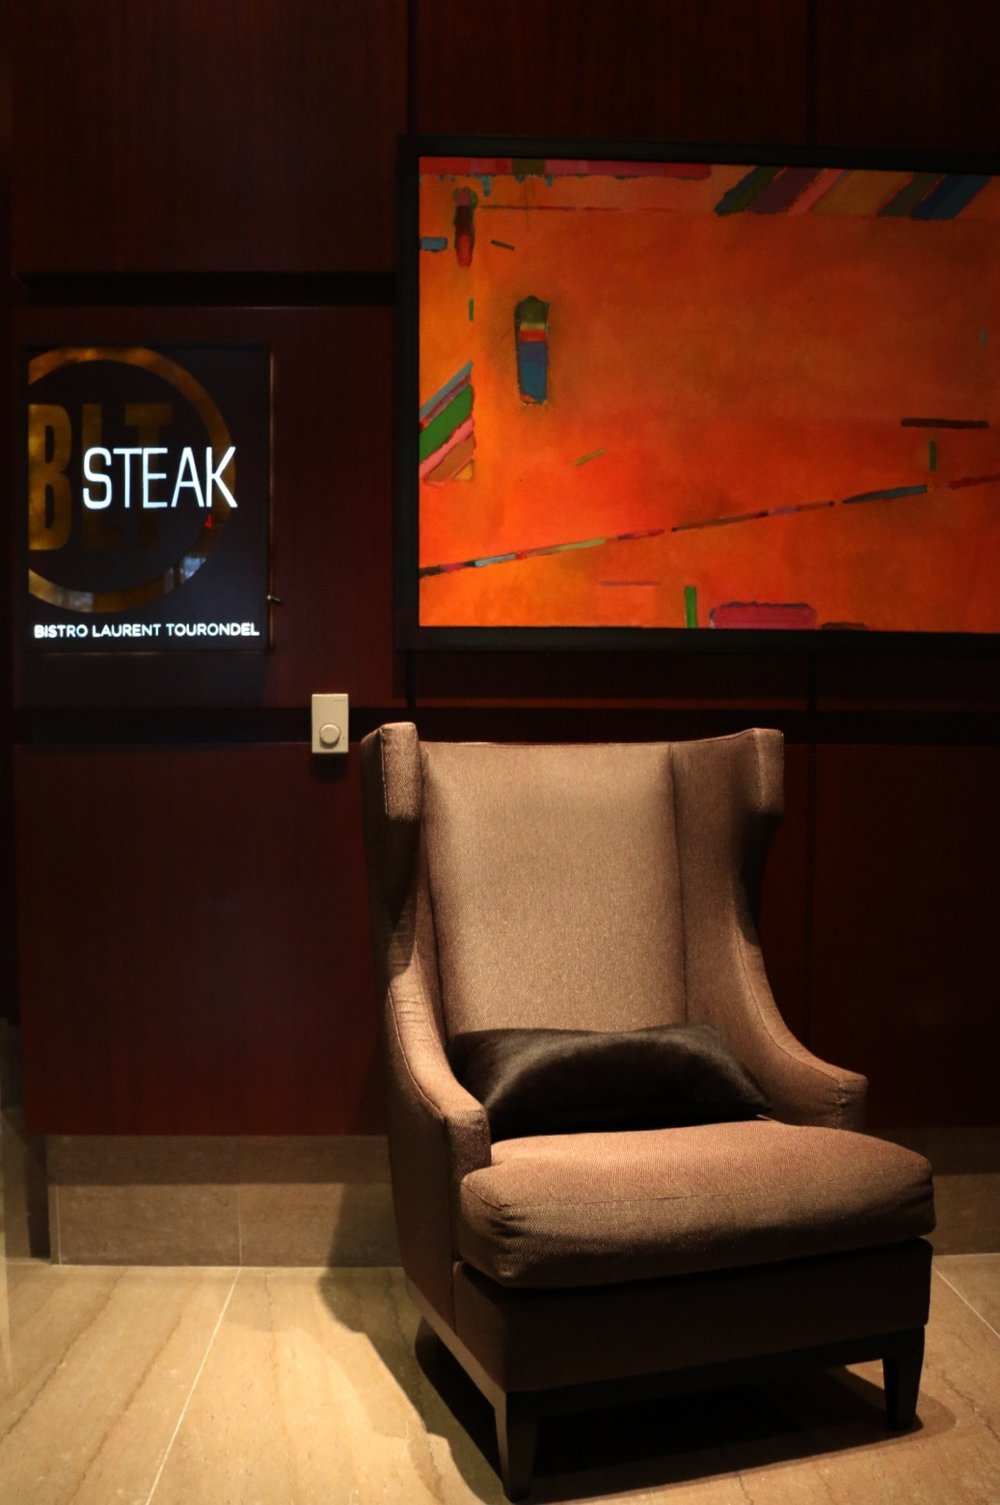 blt-steak-restaurant-uptown-ritz-carlton-nc-charlotte